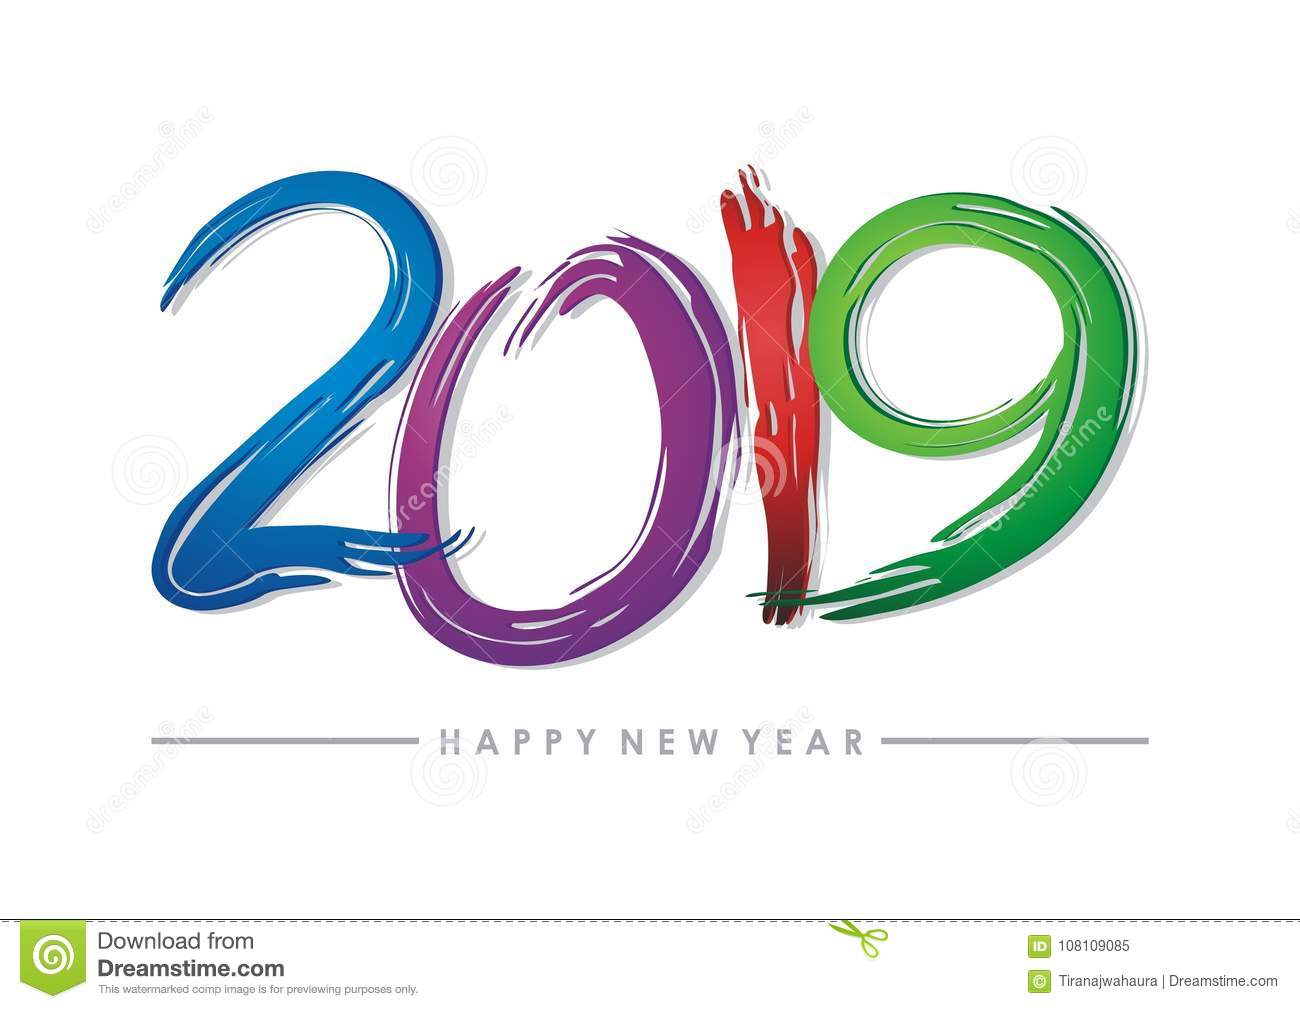 2019 happy new year text - number design